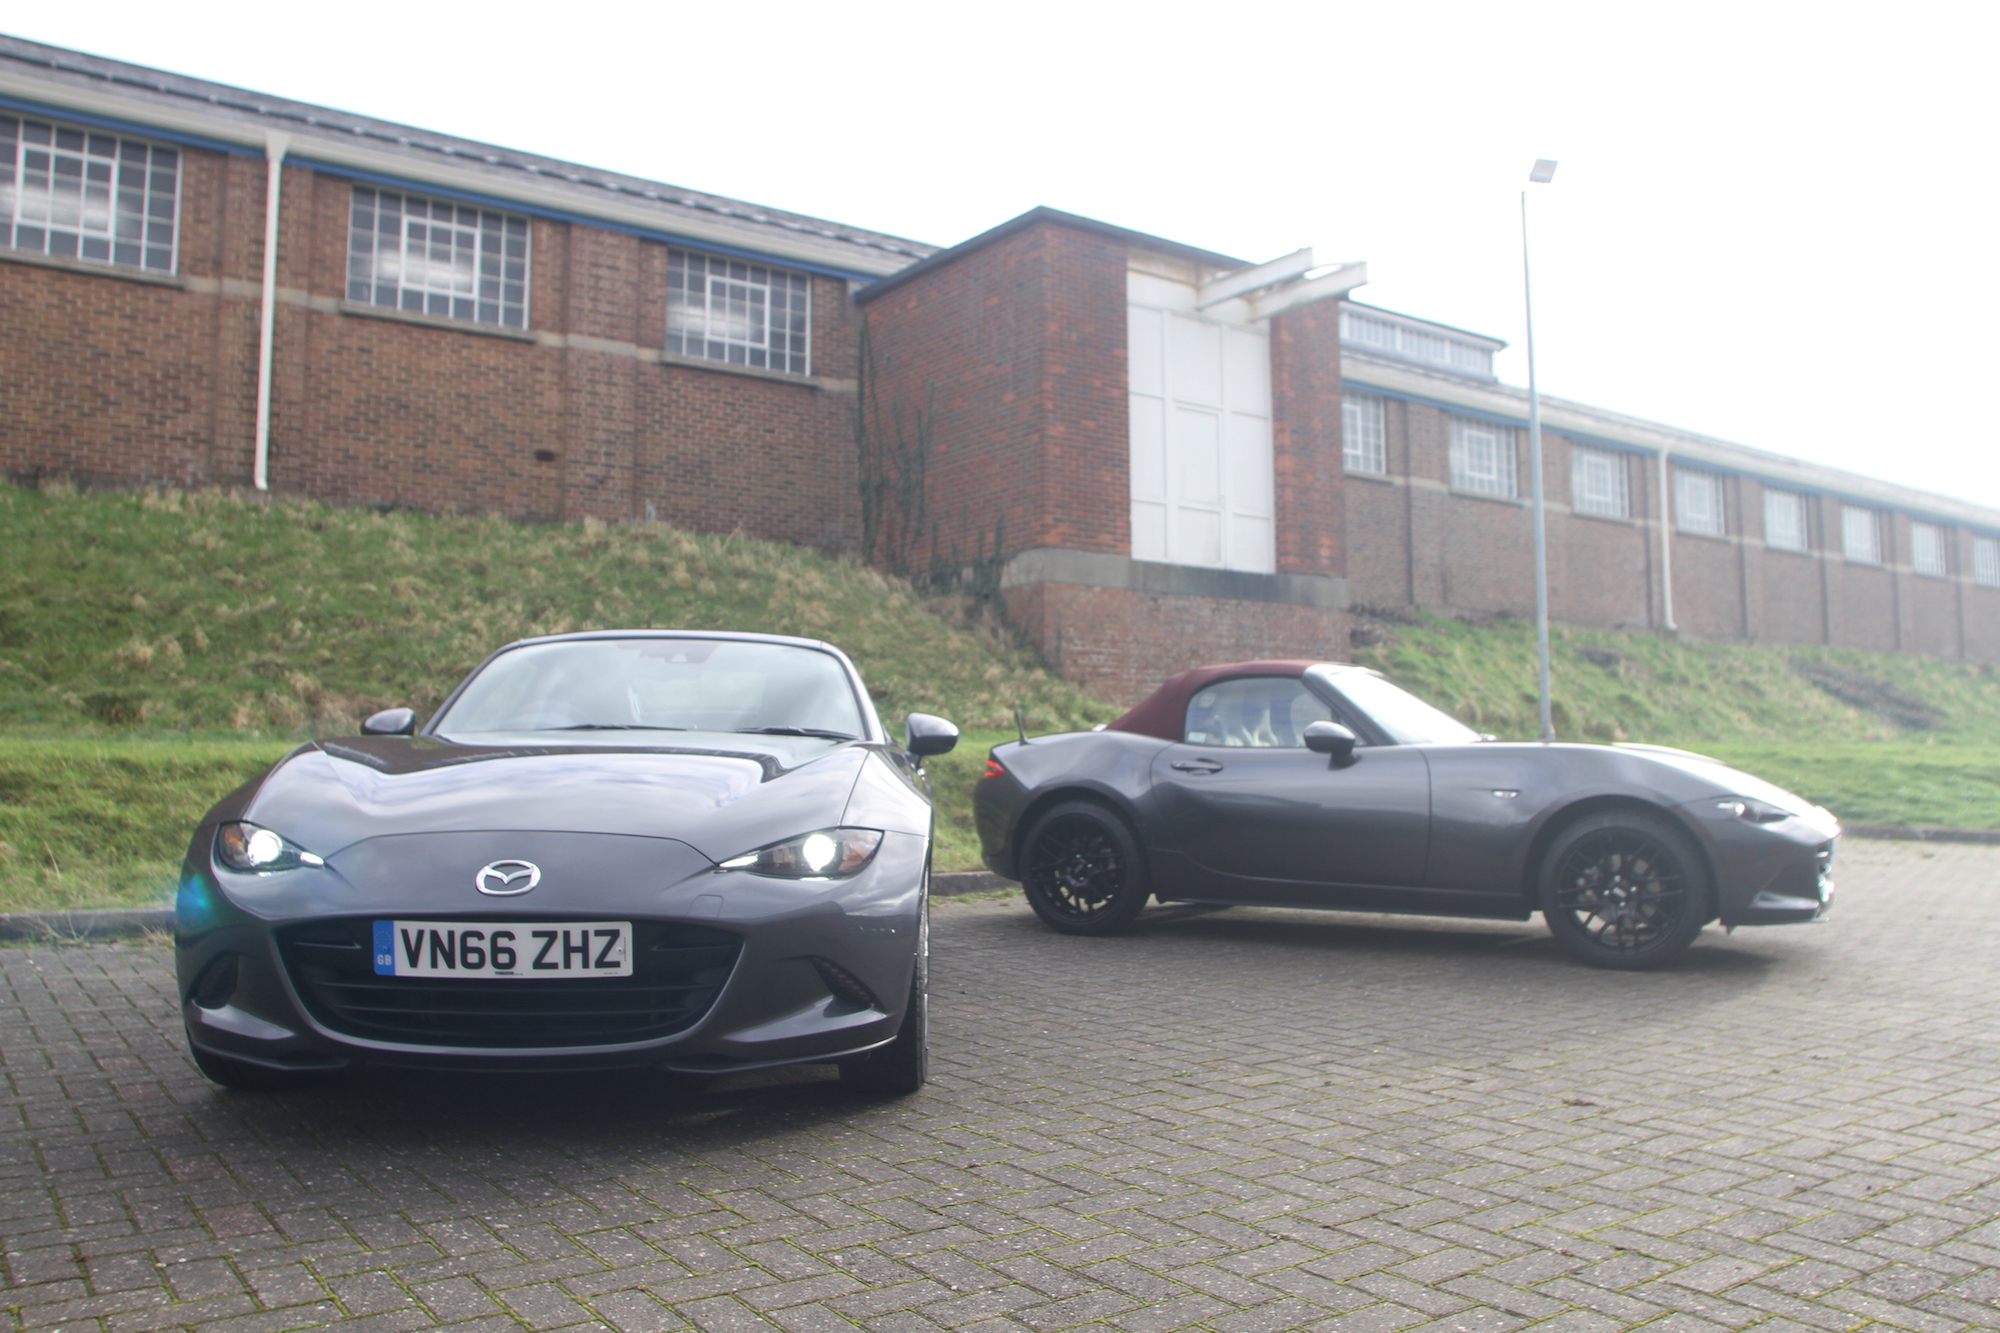 The ND Mazda MX 5 Is Arguably The Best Looking Version Of The Little Sports  Car Since The Original Was Launched In 1989. Both The RF And Soft Top  Models ...